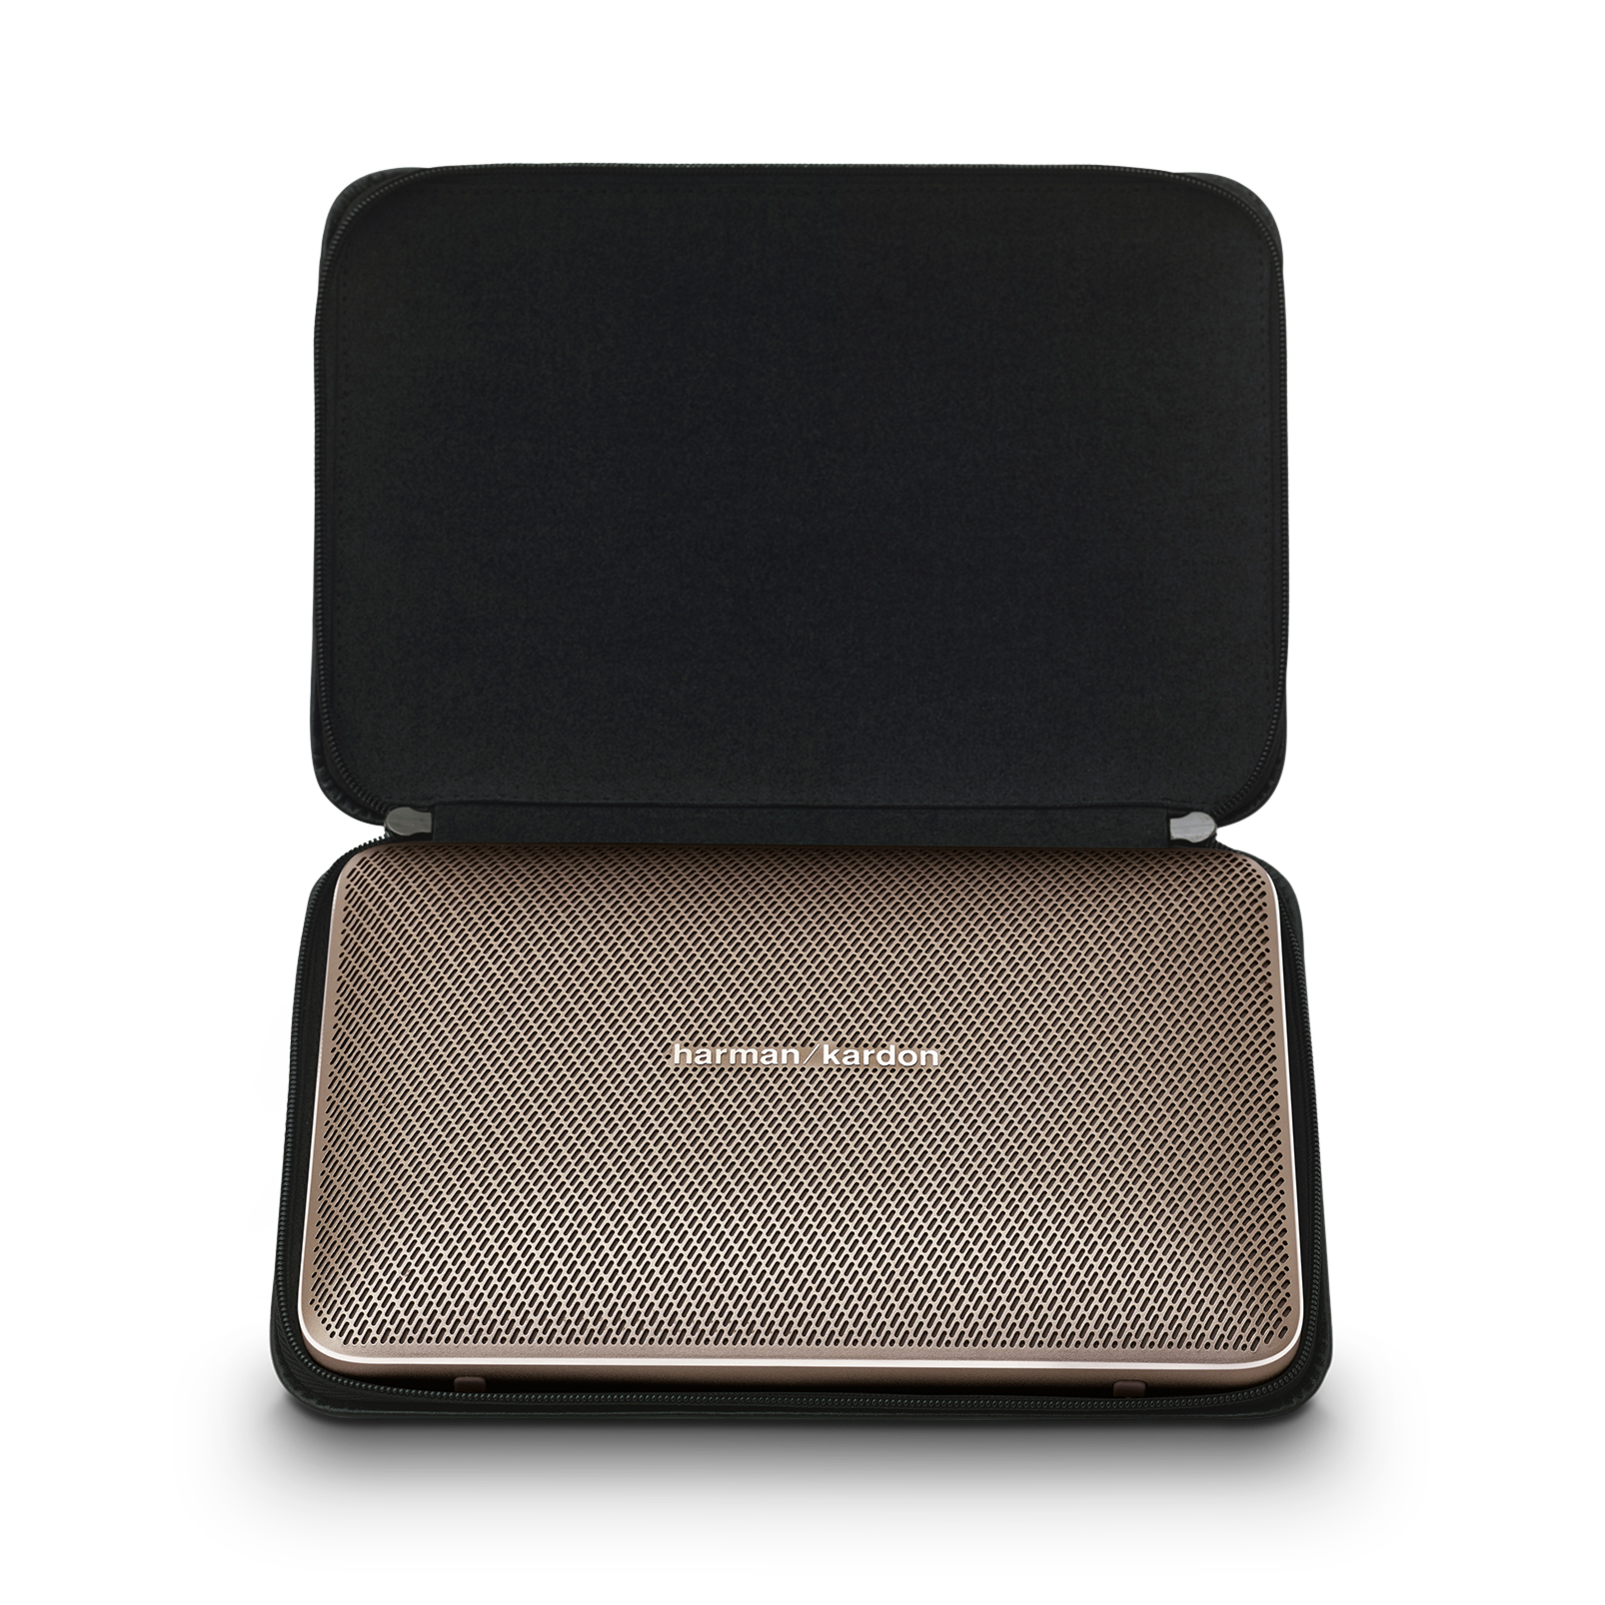 Esquire 2 Carrying Case - Black - Carrying case for Harman Kardon Esquire 2 - Detailshot 1